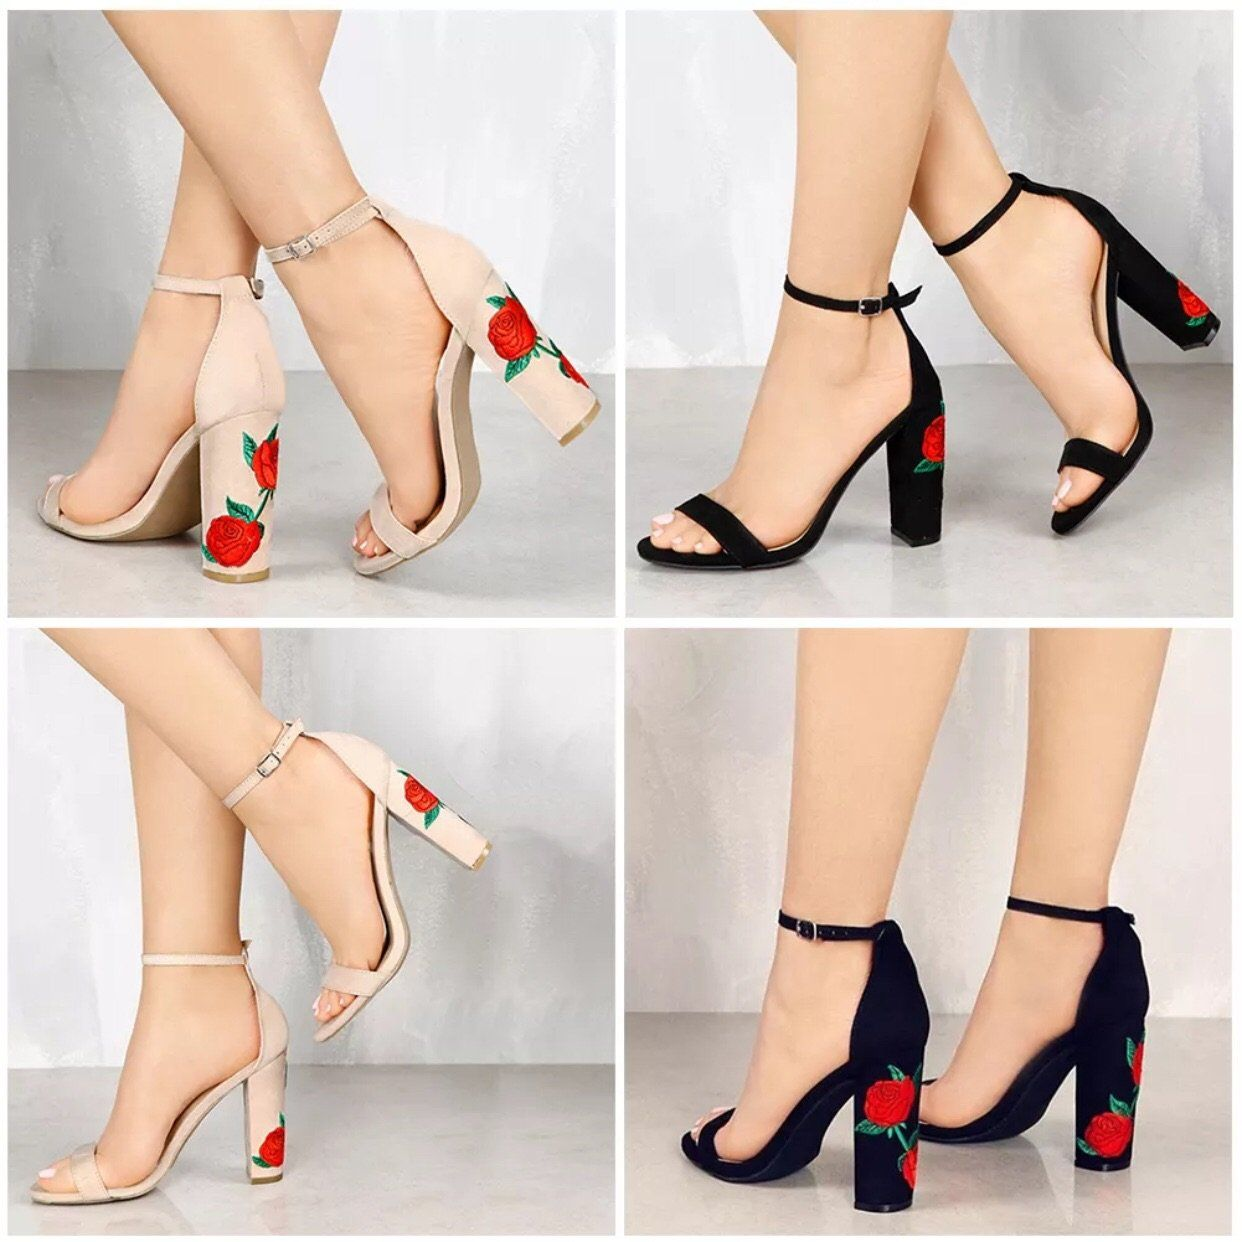 fa095c32ddf0 WOMENS FLORAL BLOCK HEEL ANKLE STRAP SANDALS LADIES PEEP TOE STRAPPY PARTY  SHOES